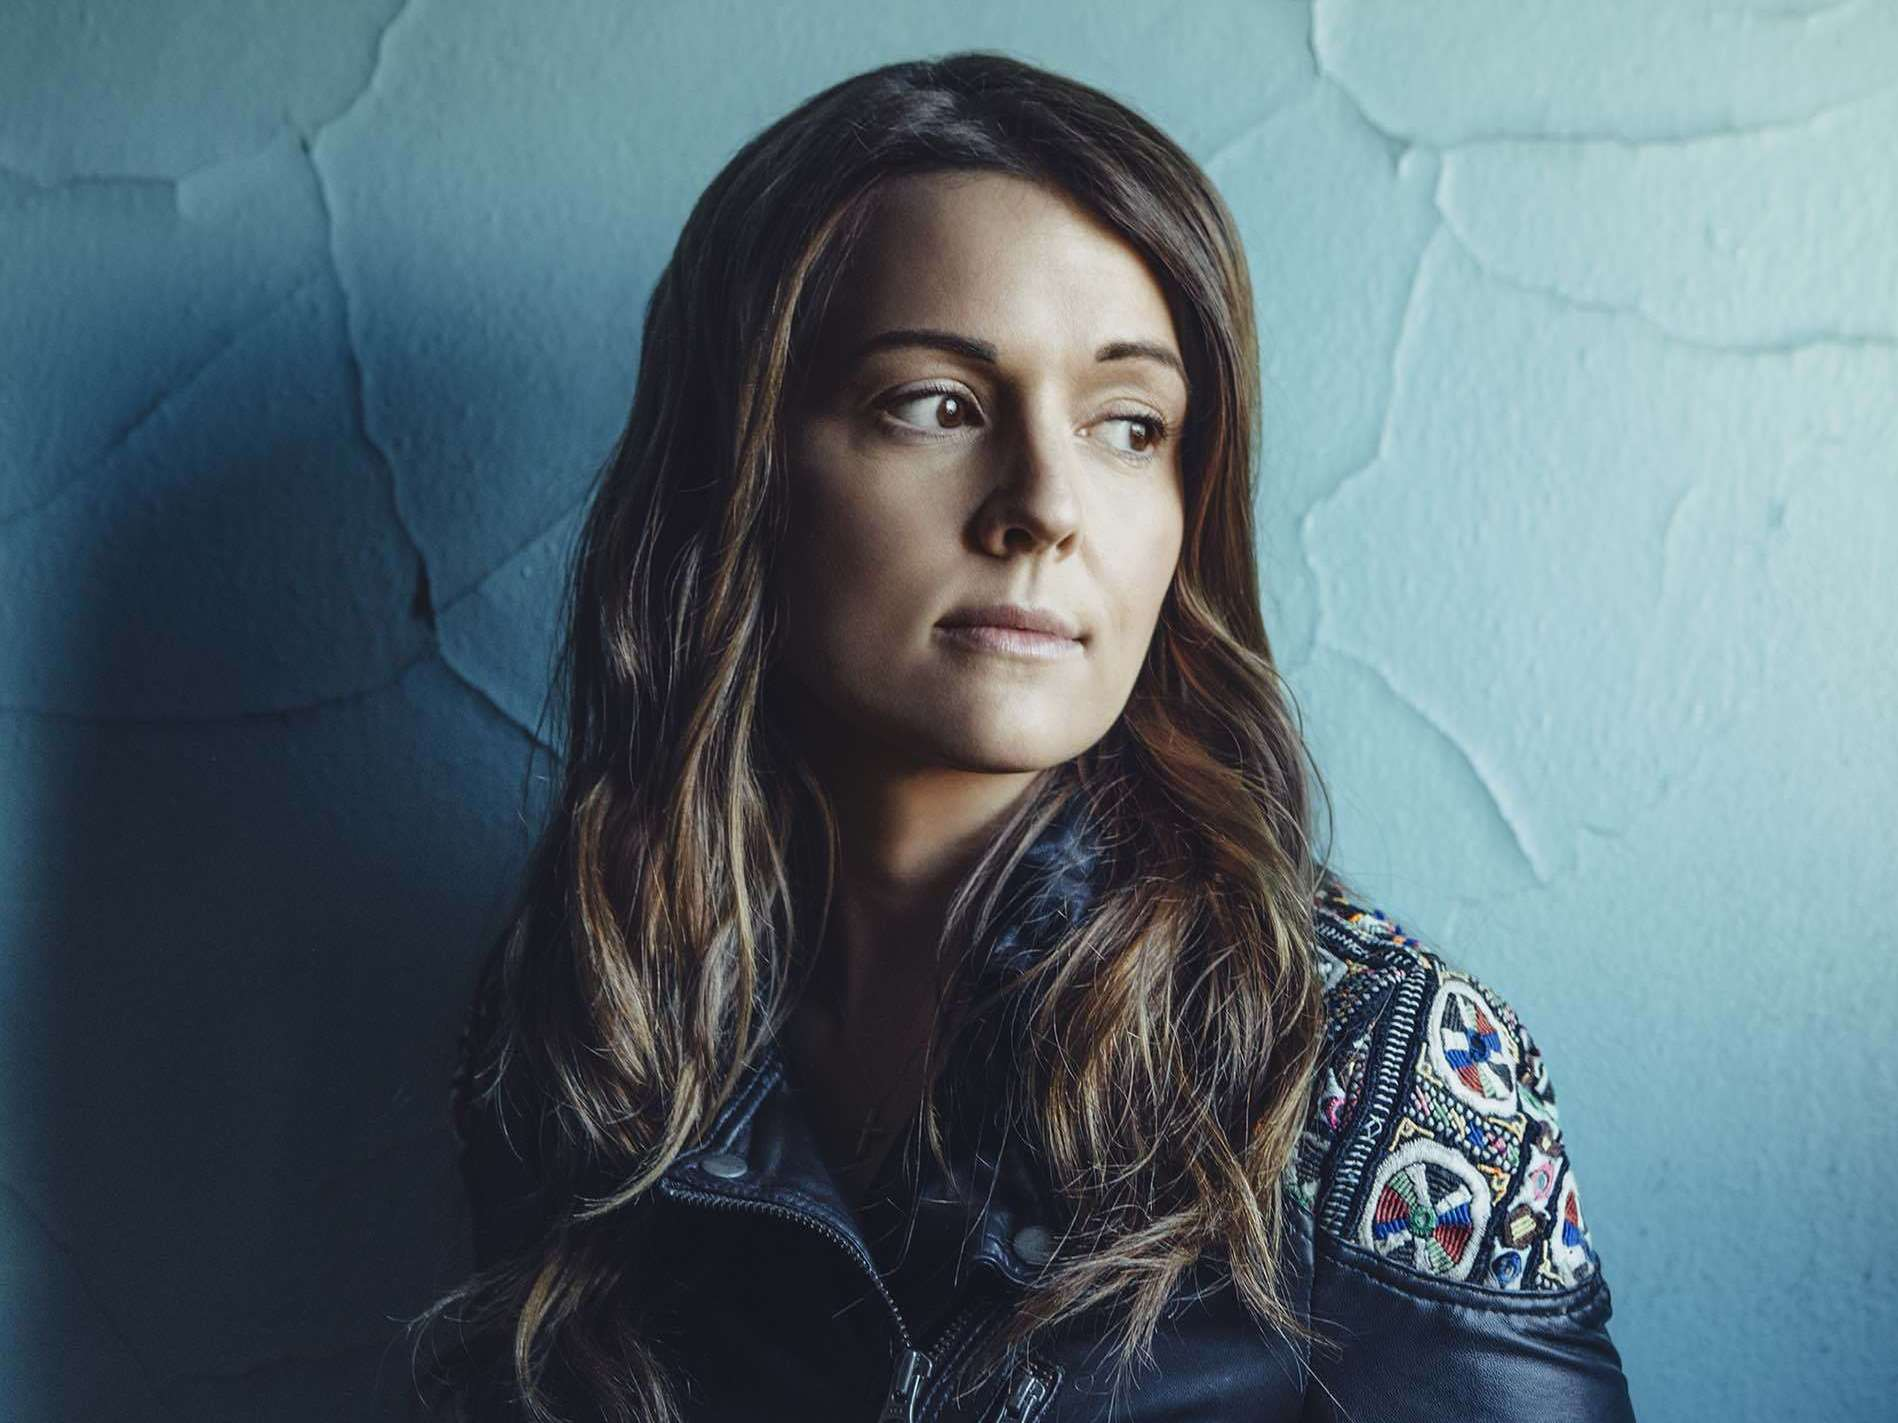 Listen To 'The Eye,' A New Song By Brandi Carlile